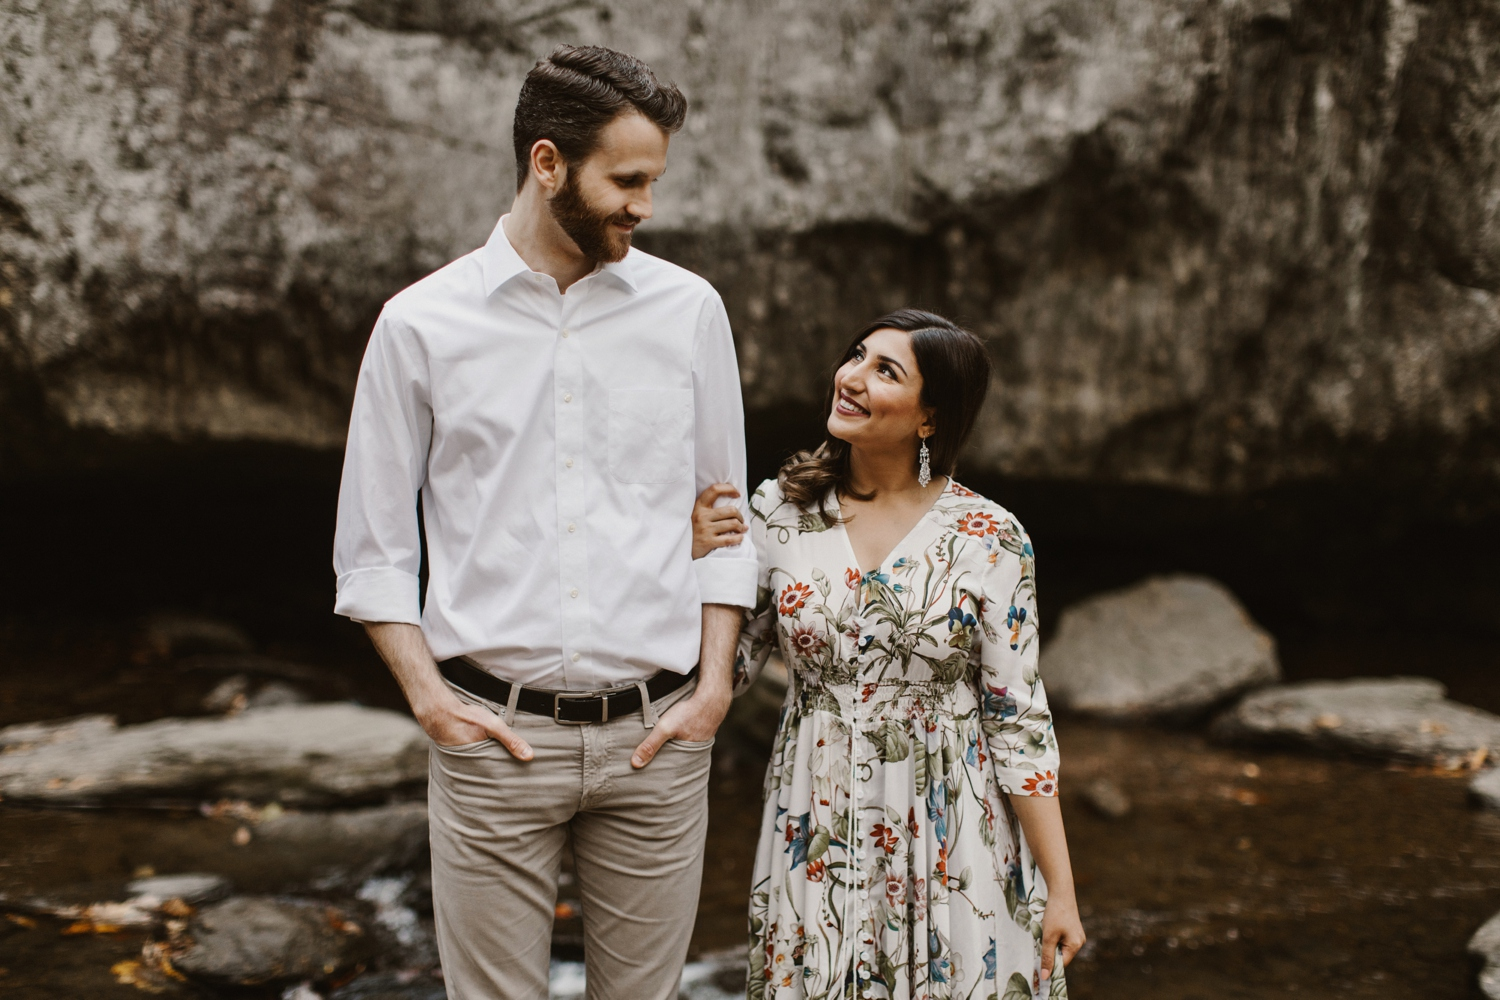 sundas-and-scotts-engagement-73_baltimore-washington-d-c-waterfall-kilgore-engagement-session-maxi-dress-earthy-maryland-wedding-photographer-kate-ann-photography-phot